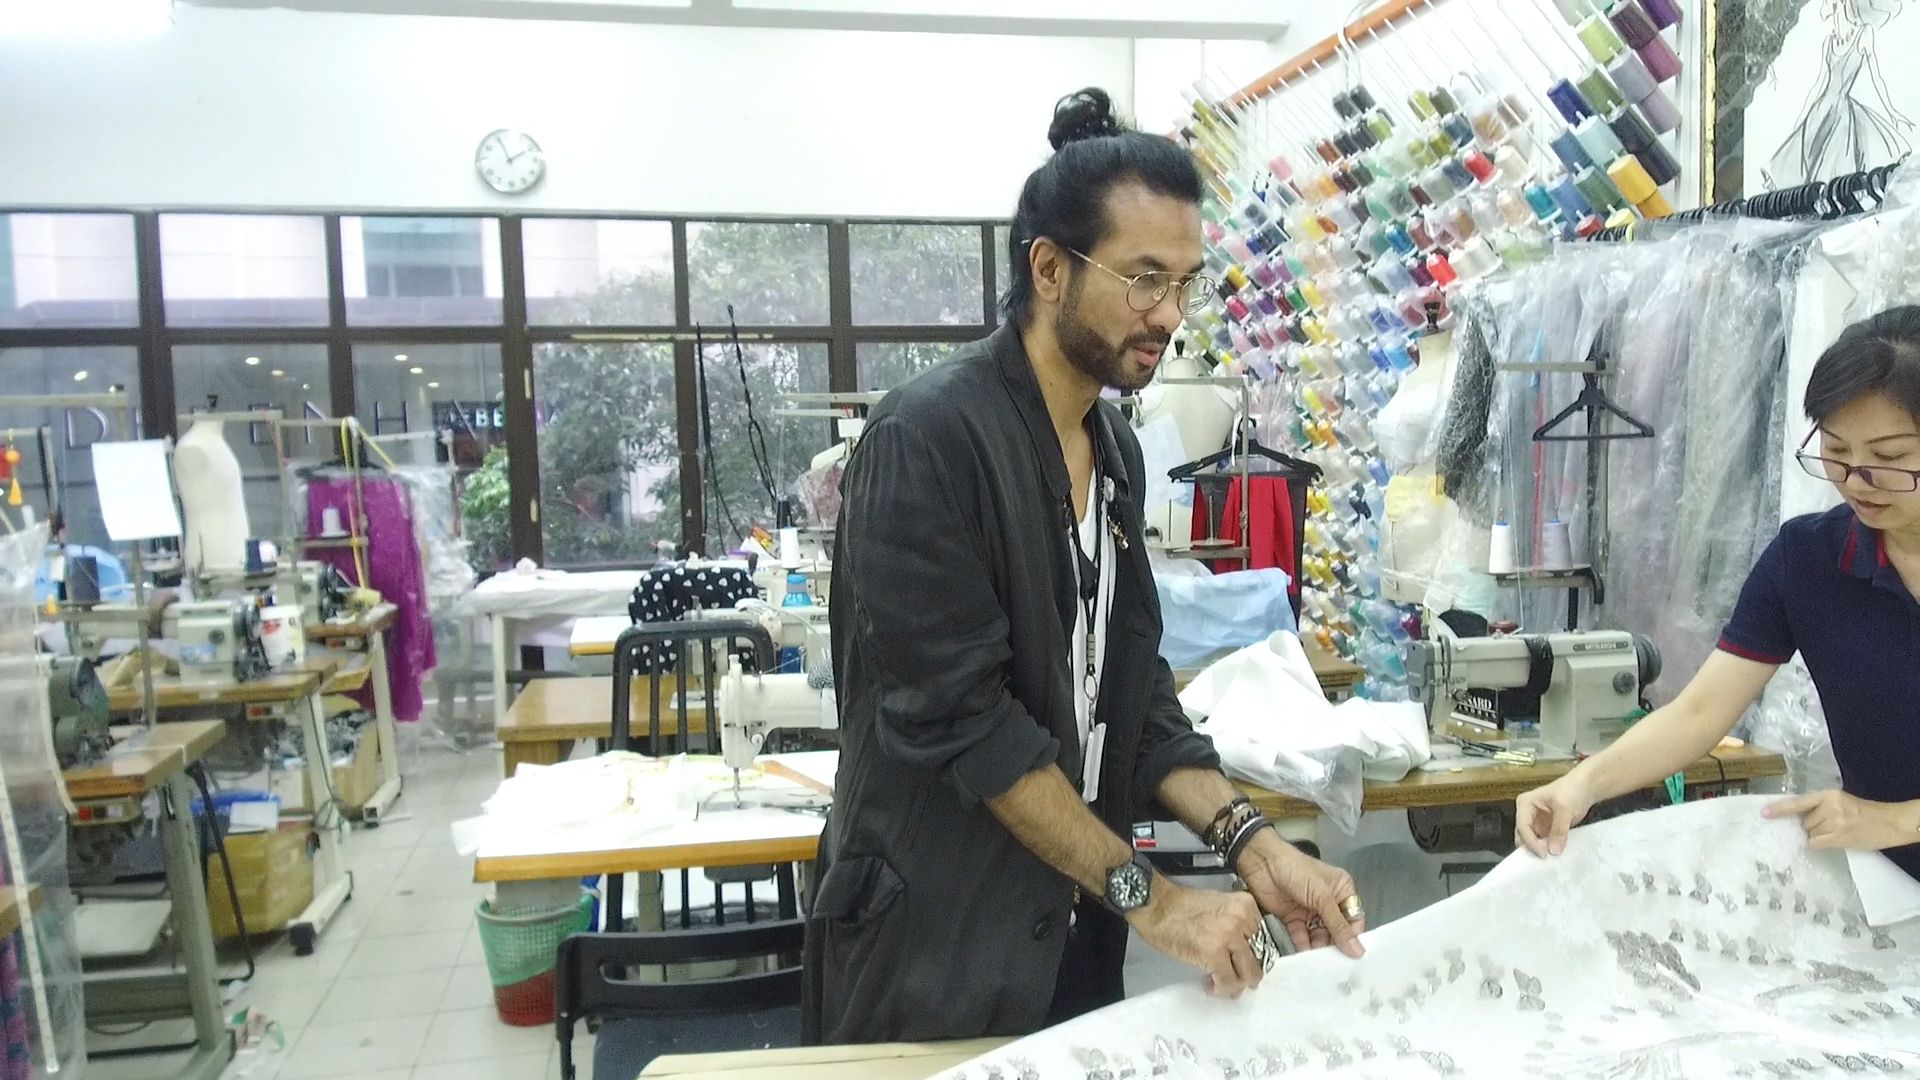 Video Exclusive: The Making Of Bernard Chandran's First Bridal Collection